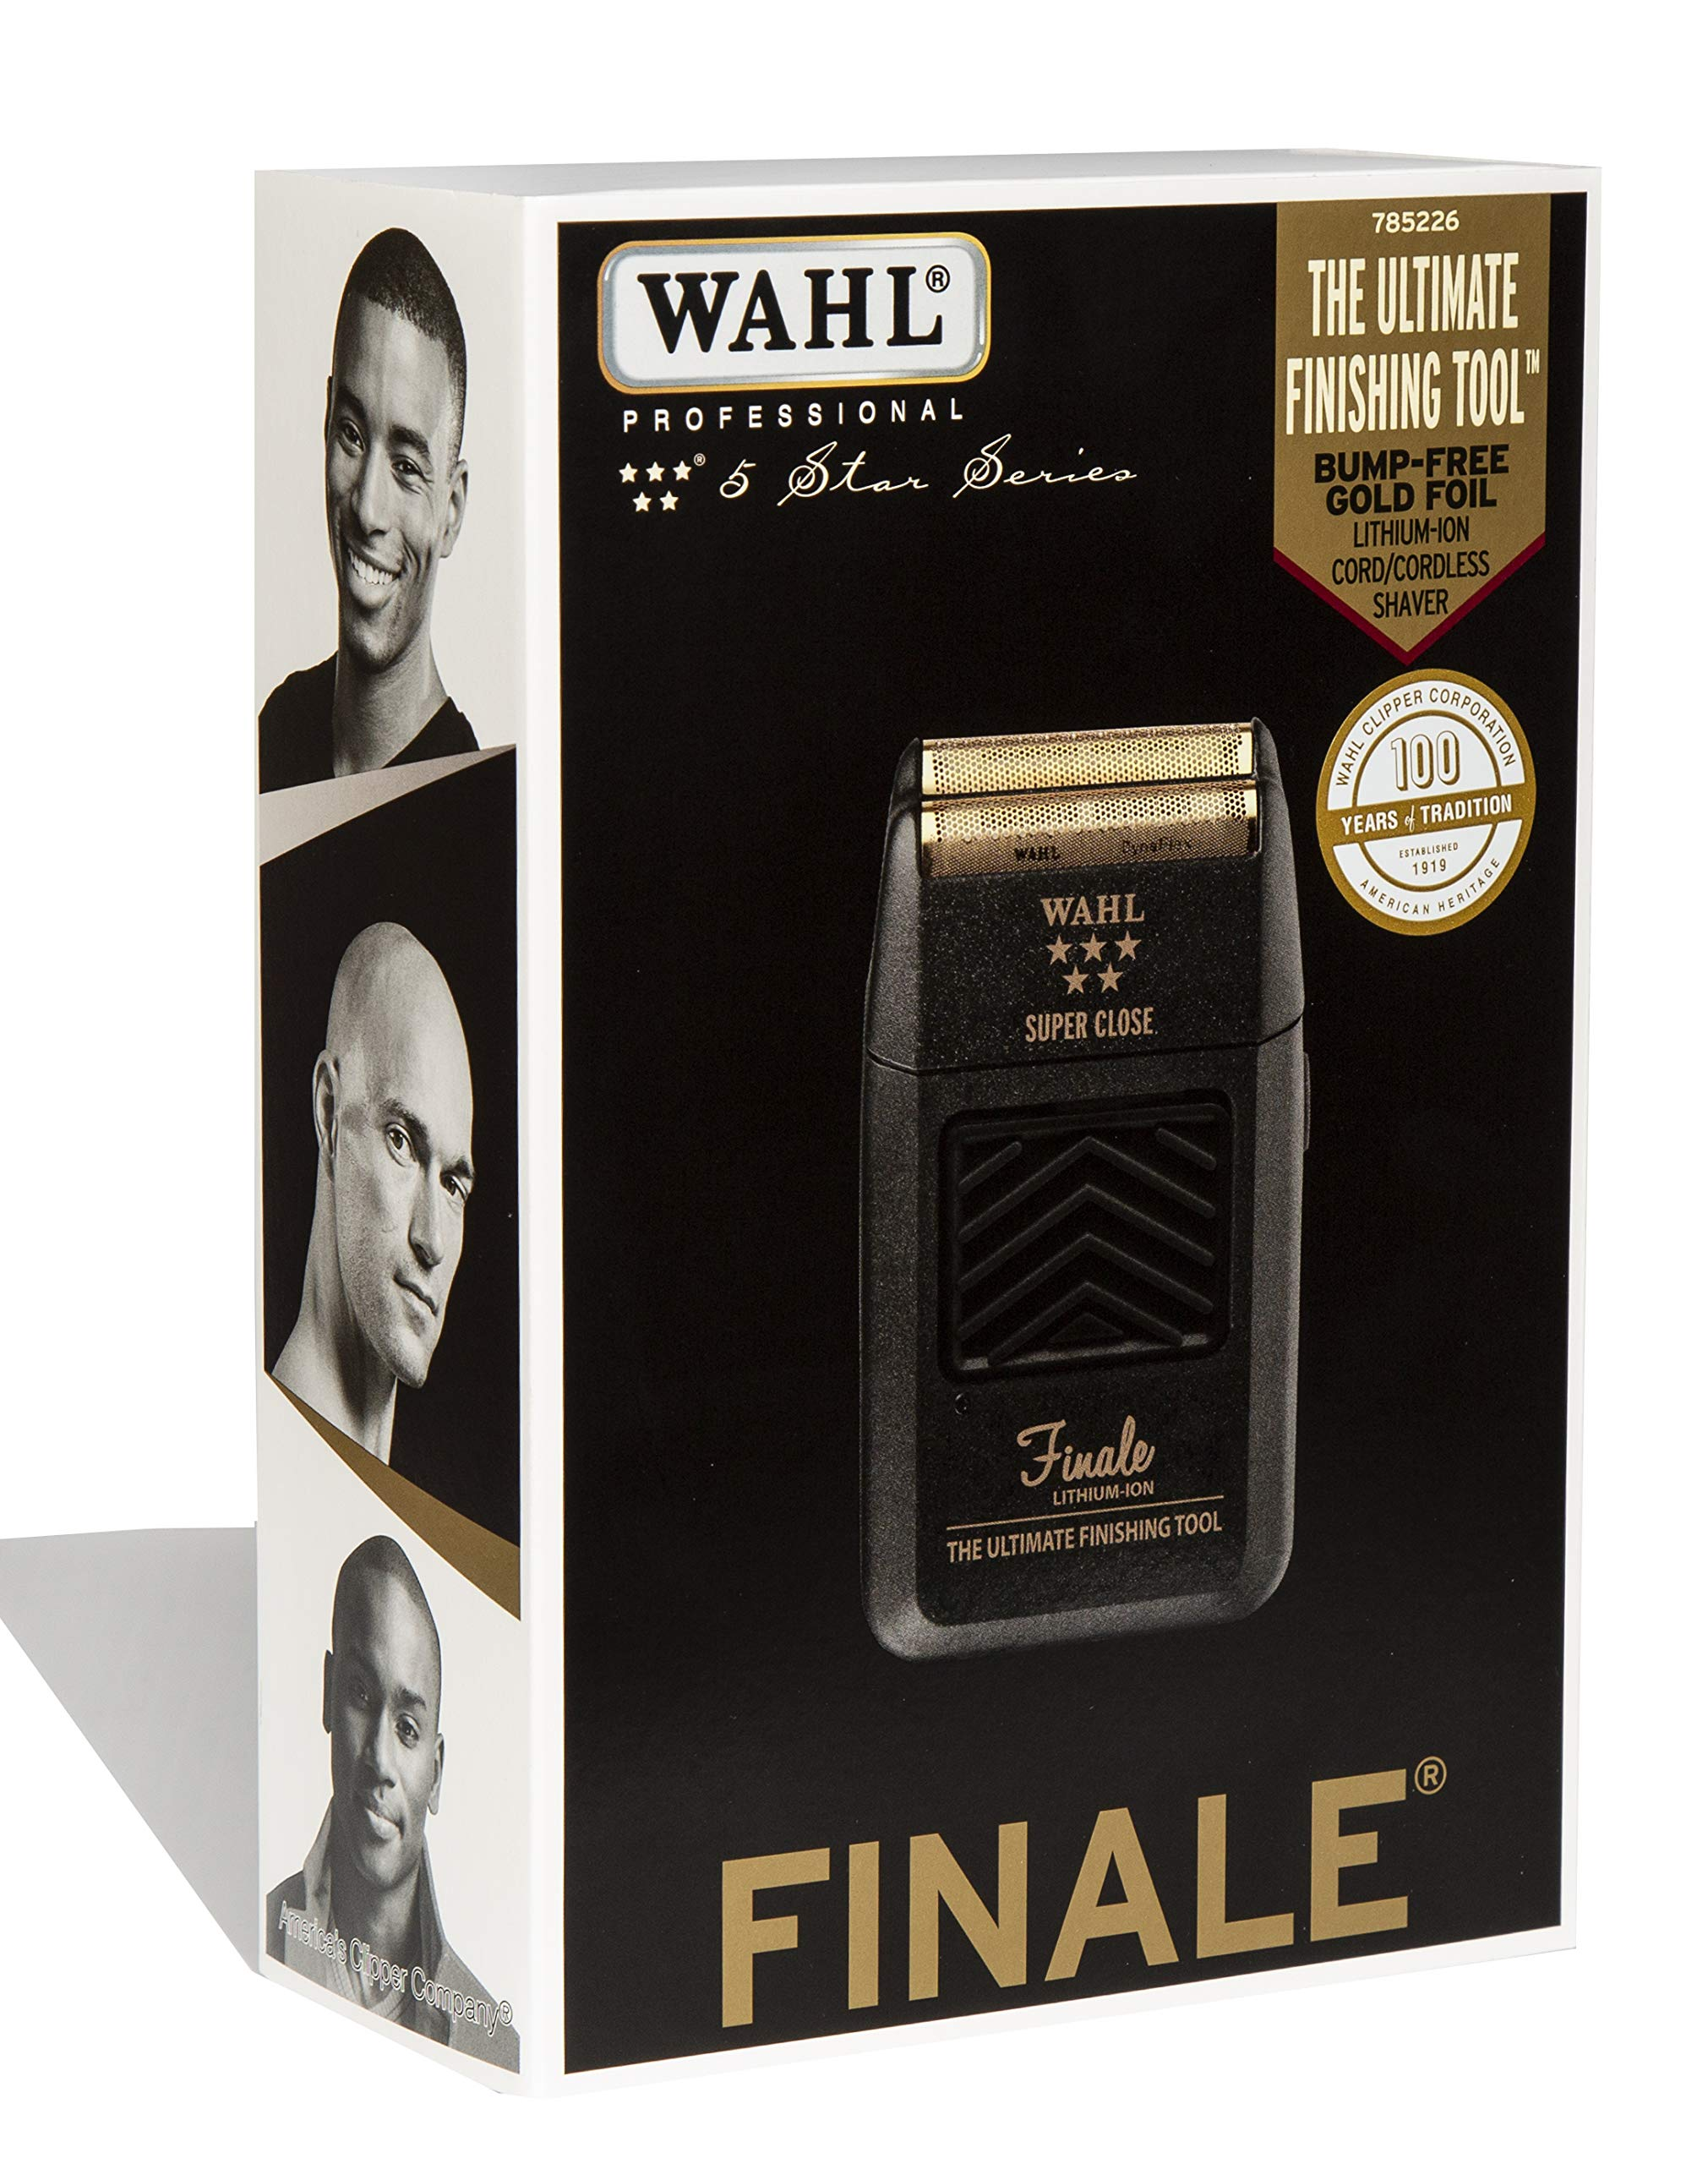 Wahl Professional 5-Star Series Finale Finishing Tool #8164 - Great for Professional Stylists and Barbers - Super Close - Black by Wahl Professional